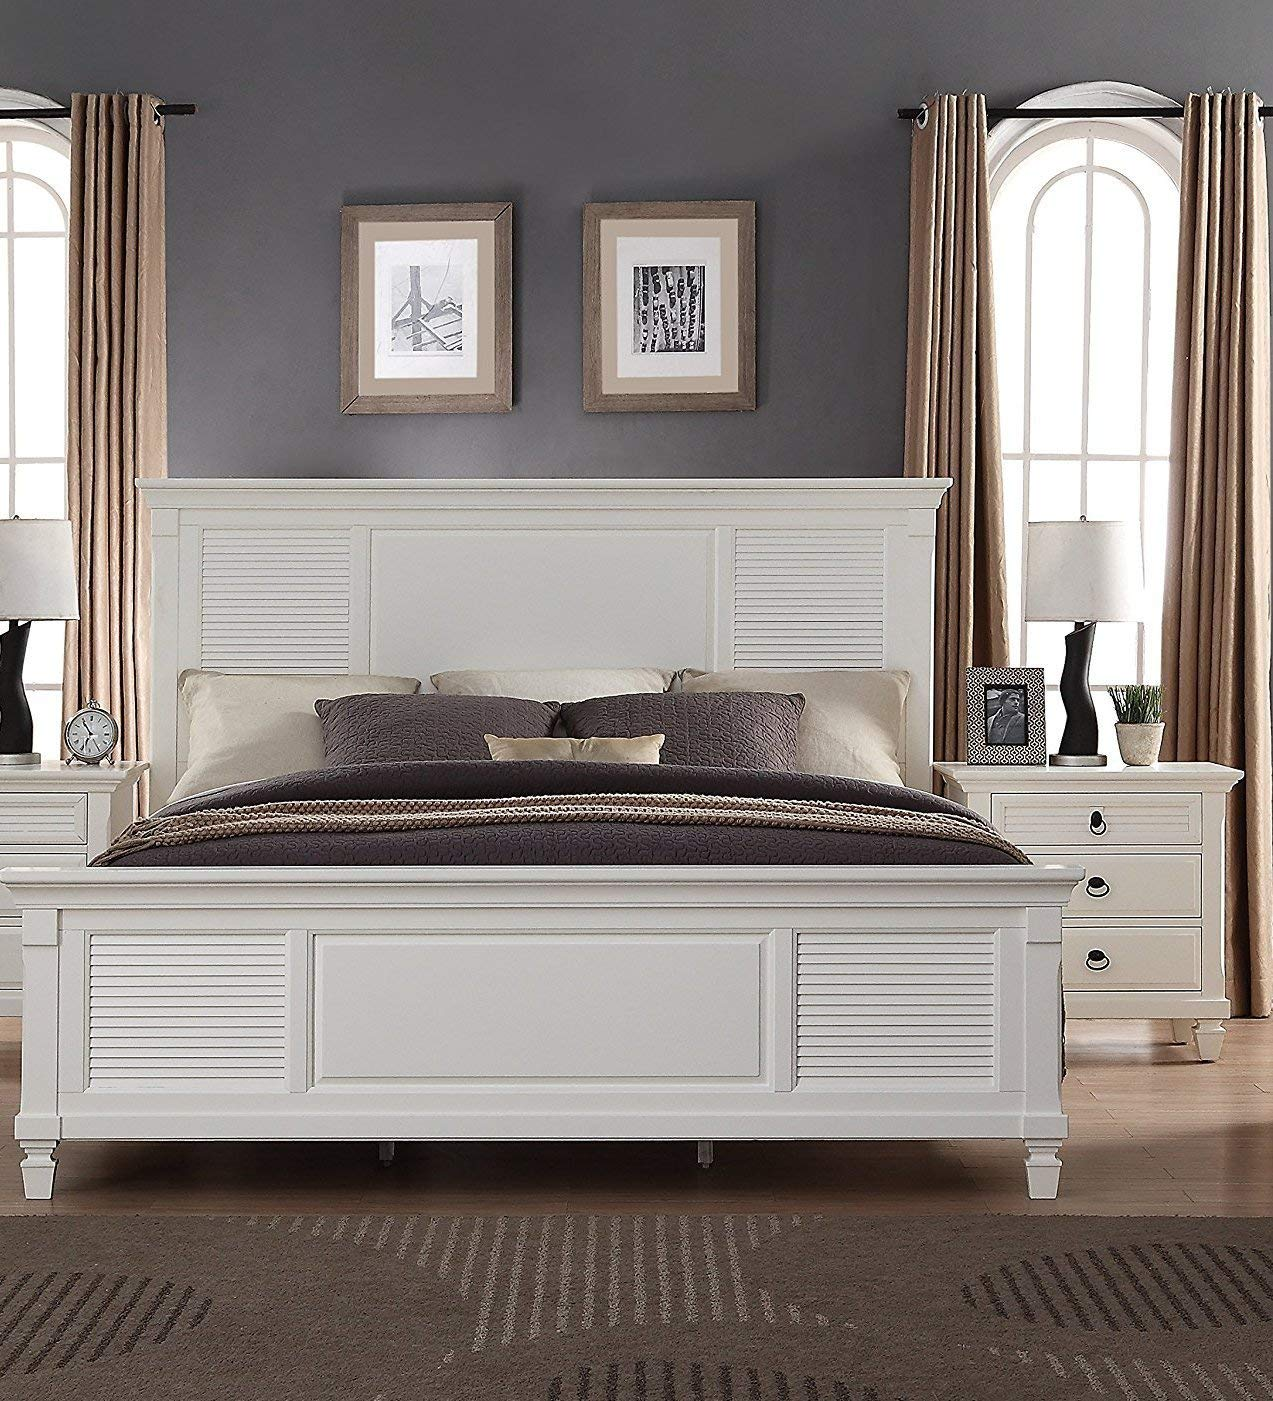 Roundhill Furniture Regitina 016 Bedroom Furniture Set, King Bed